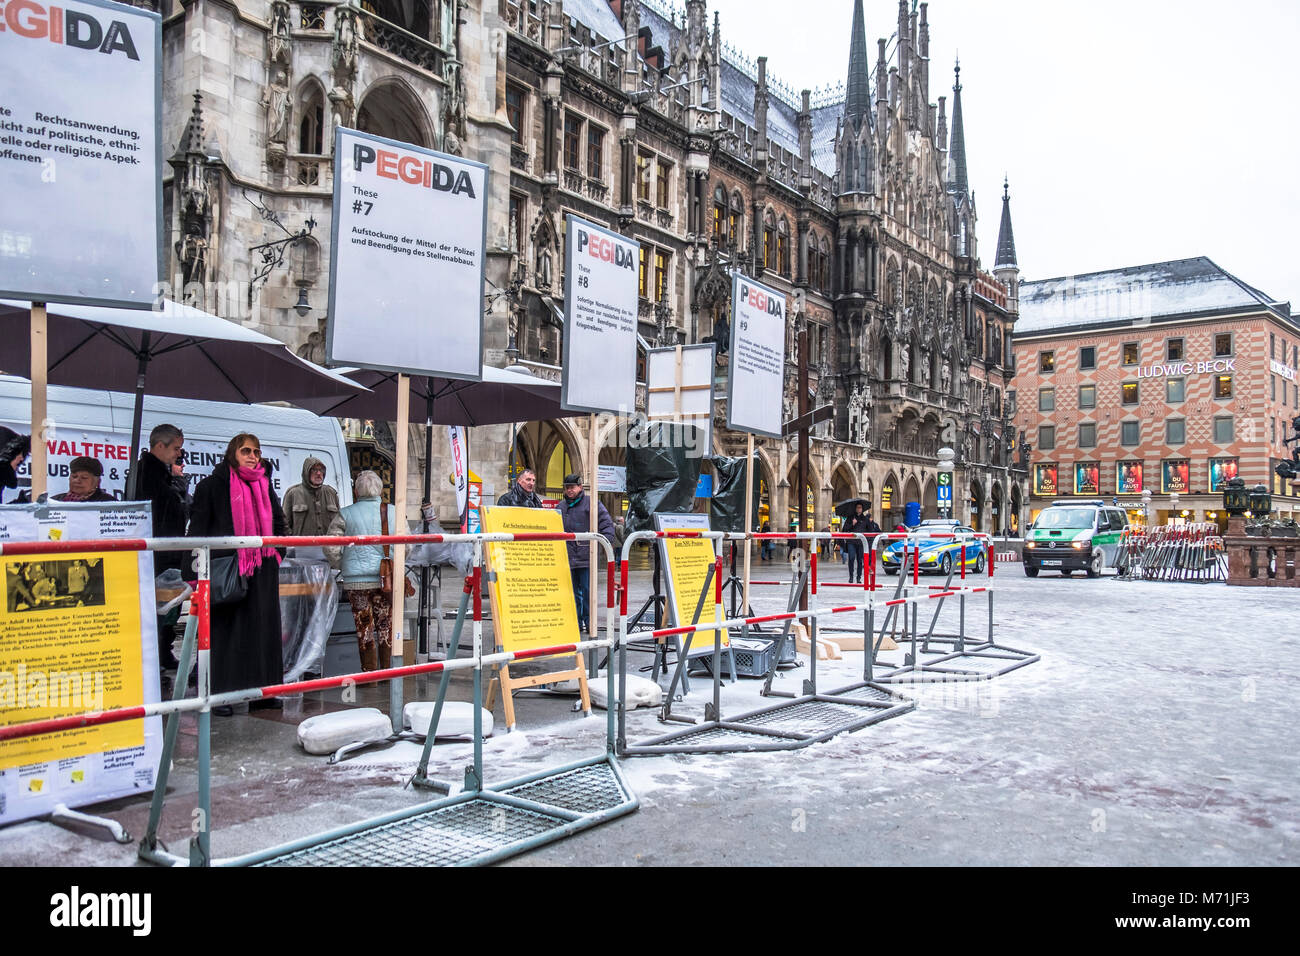 MUNICH / GERMANY - FEBRUARY 15 2018: PEGIDA is demonstrating in the city. Stock Photo